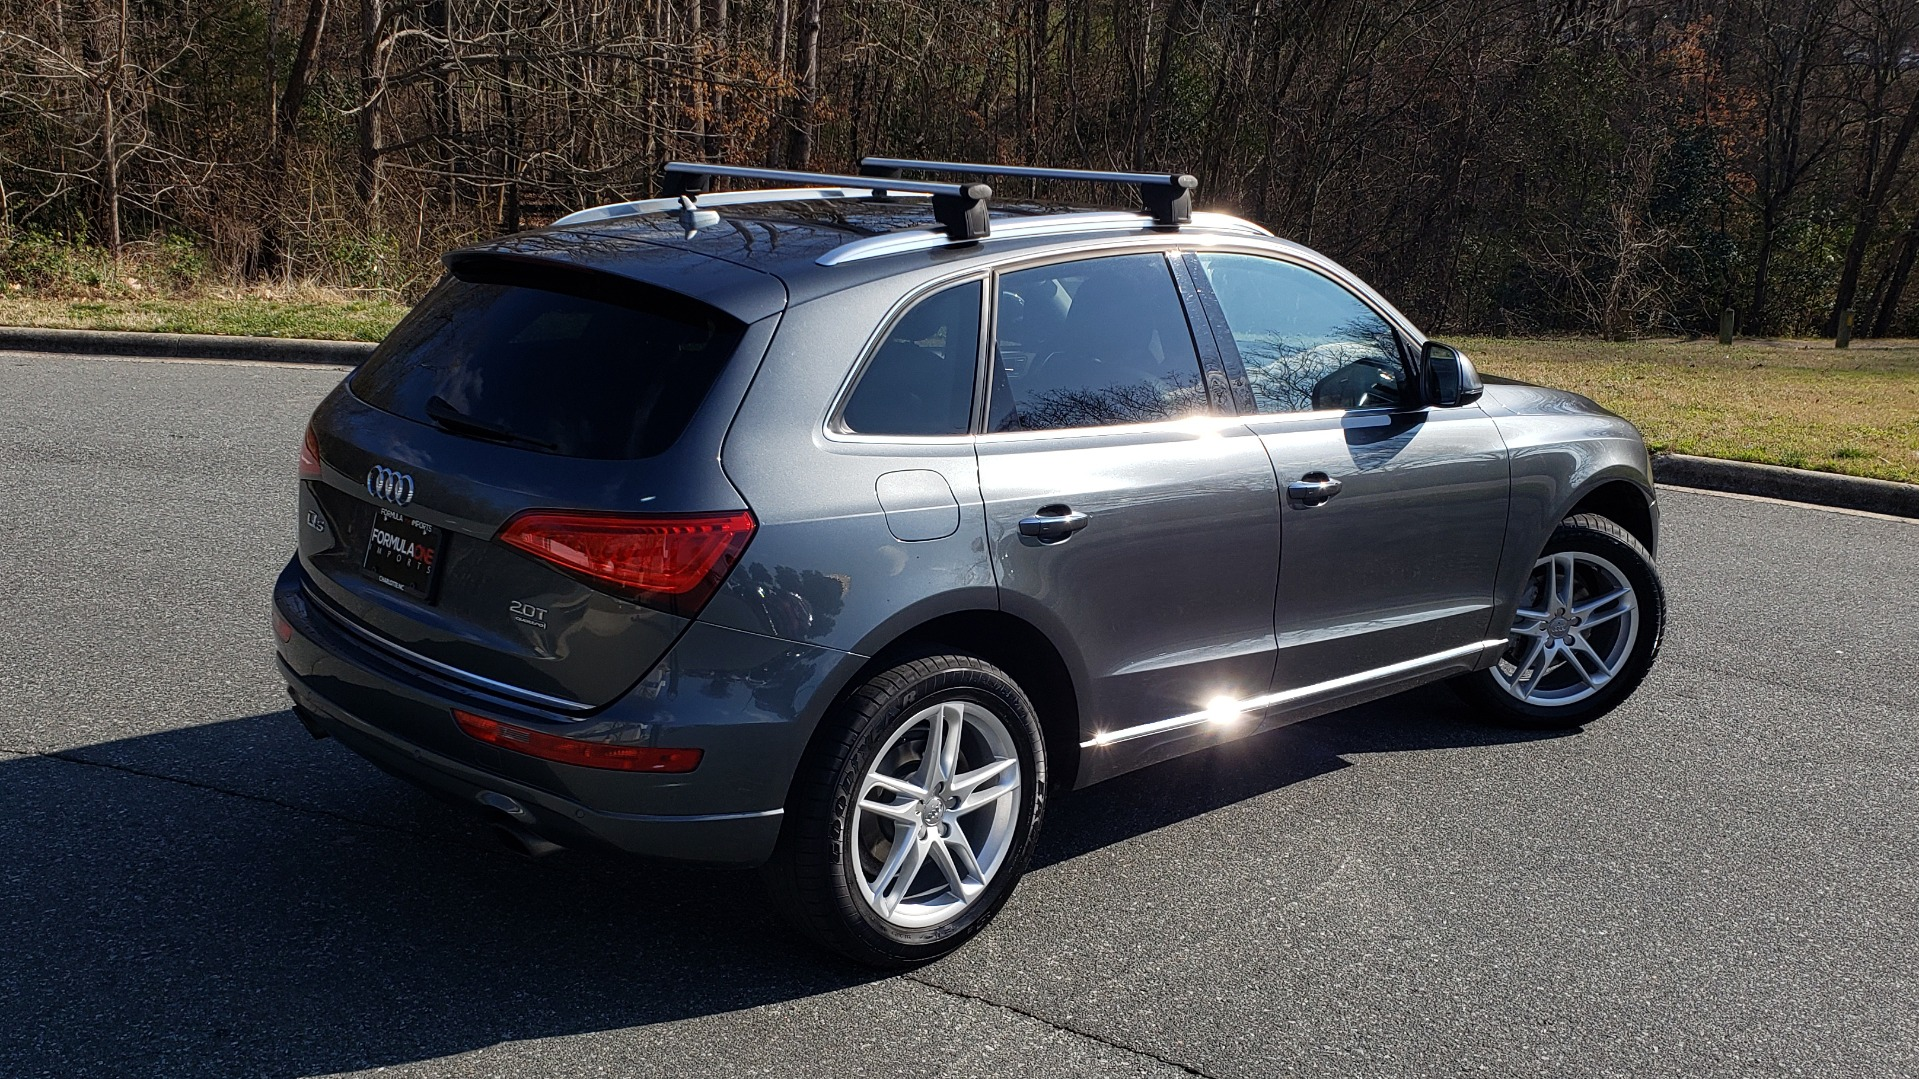 Used 2017 Audi Q5 PREMIUM PLUS / TECH / NAV / PANO / REARVIEW / B&O SND for sale Sold at Formula Imports in Charlotte NC 28227 7